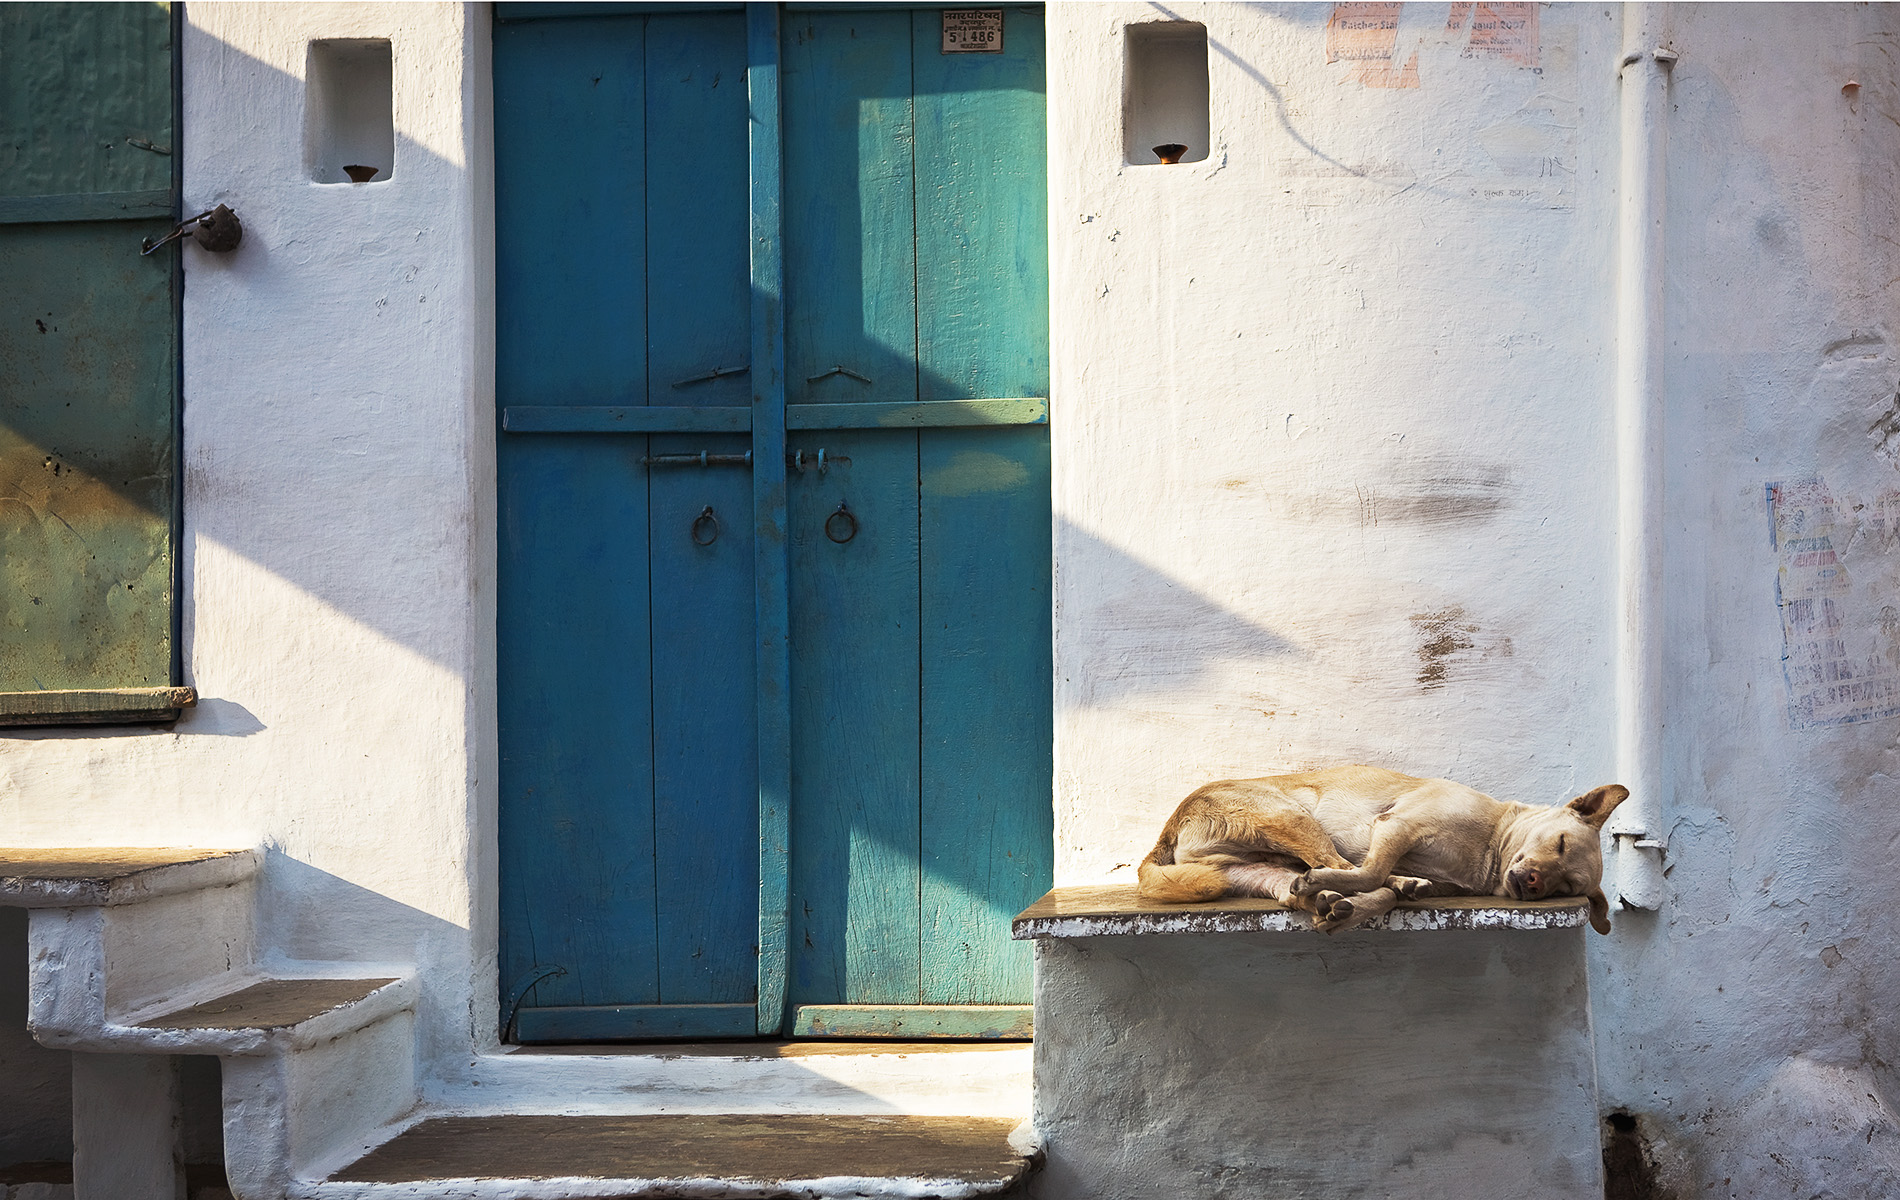 The Dog & the Turquoise Door